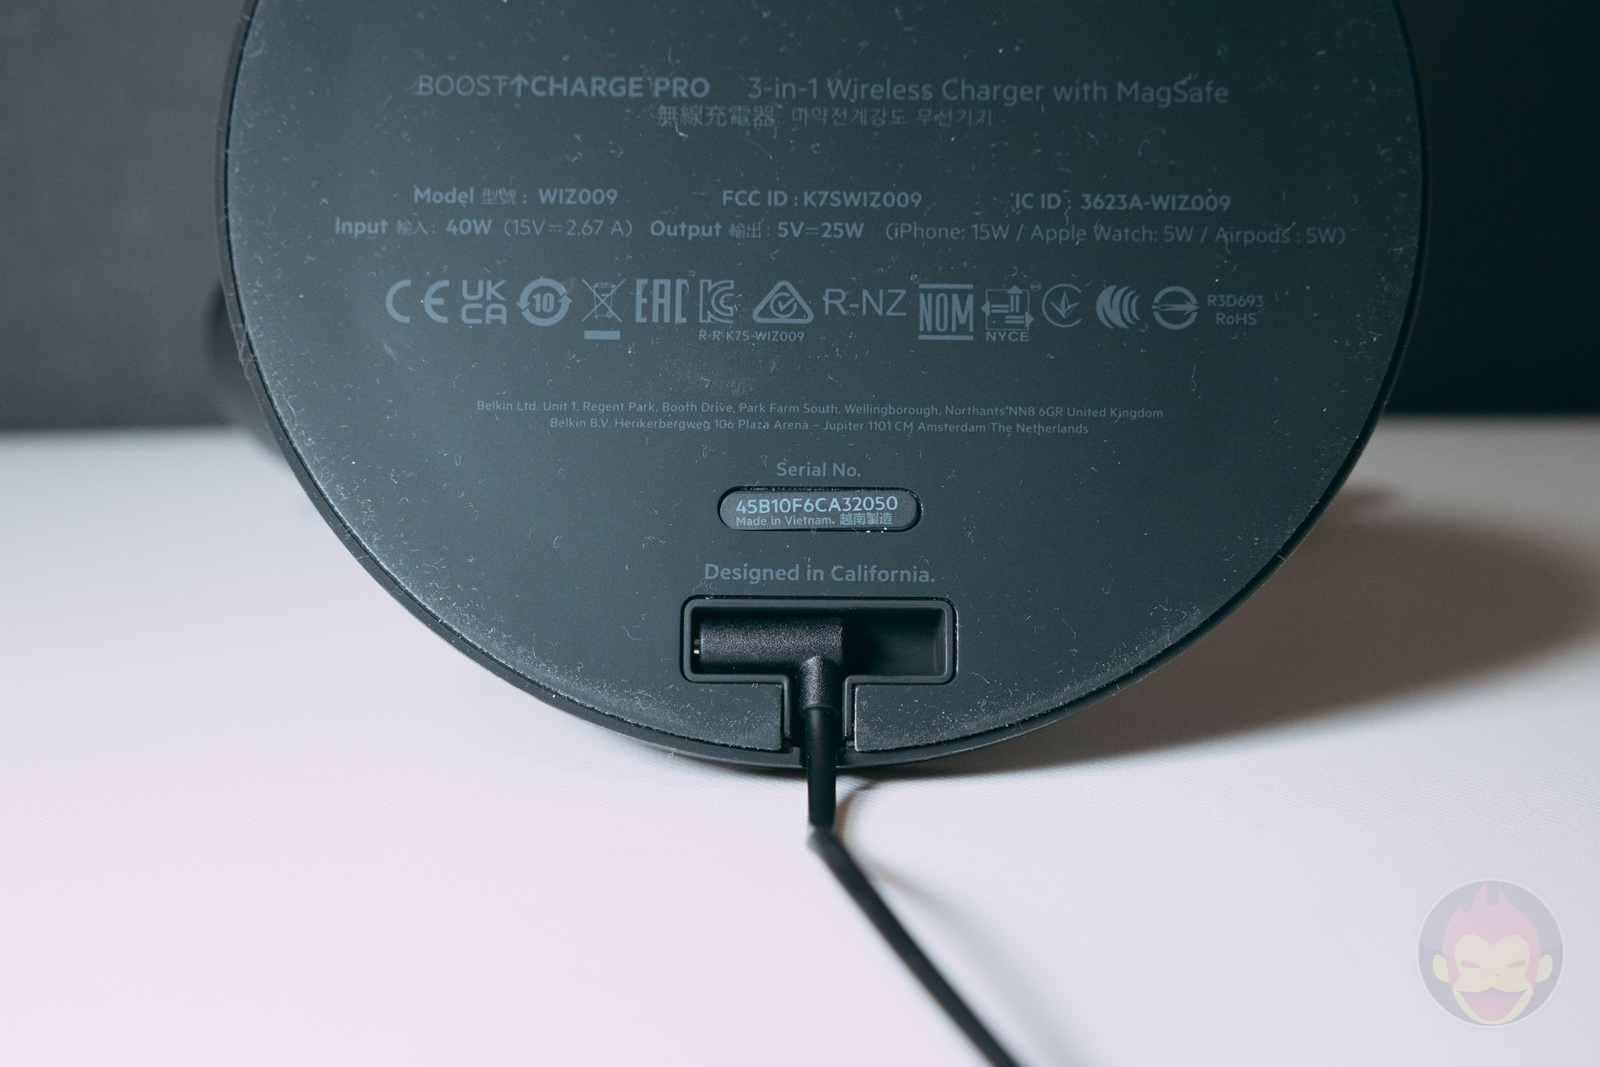 Belkin Boost charge pro 3 in 1 wireless charger with magsafe review 01